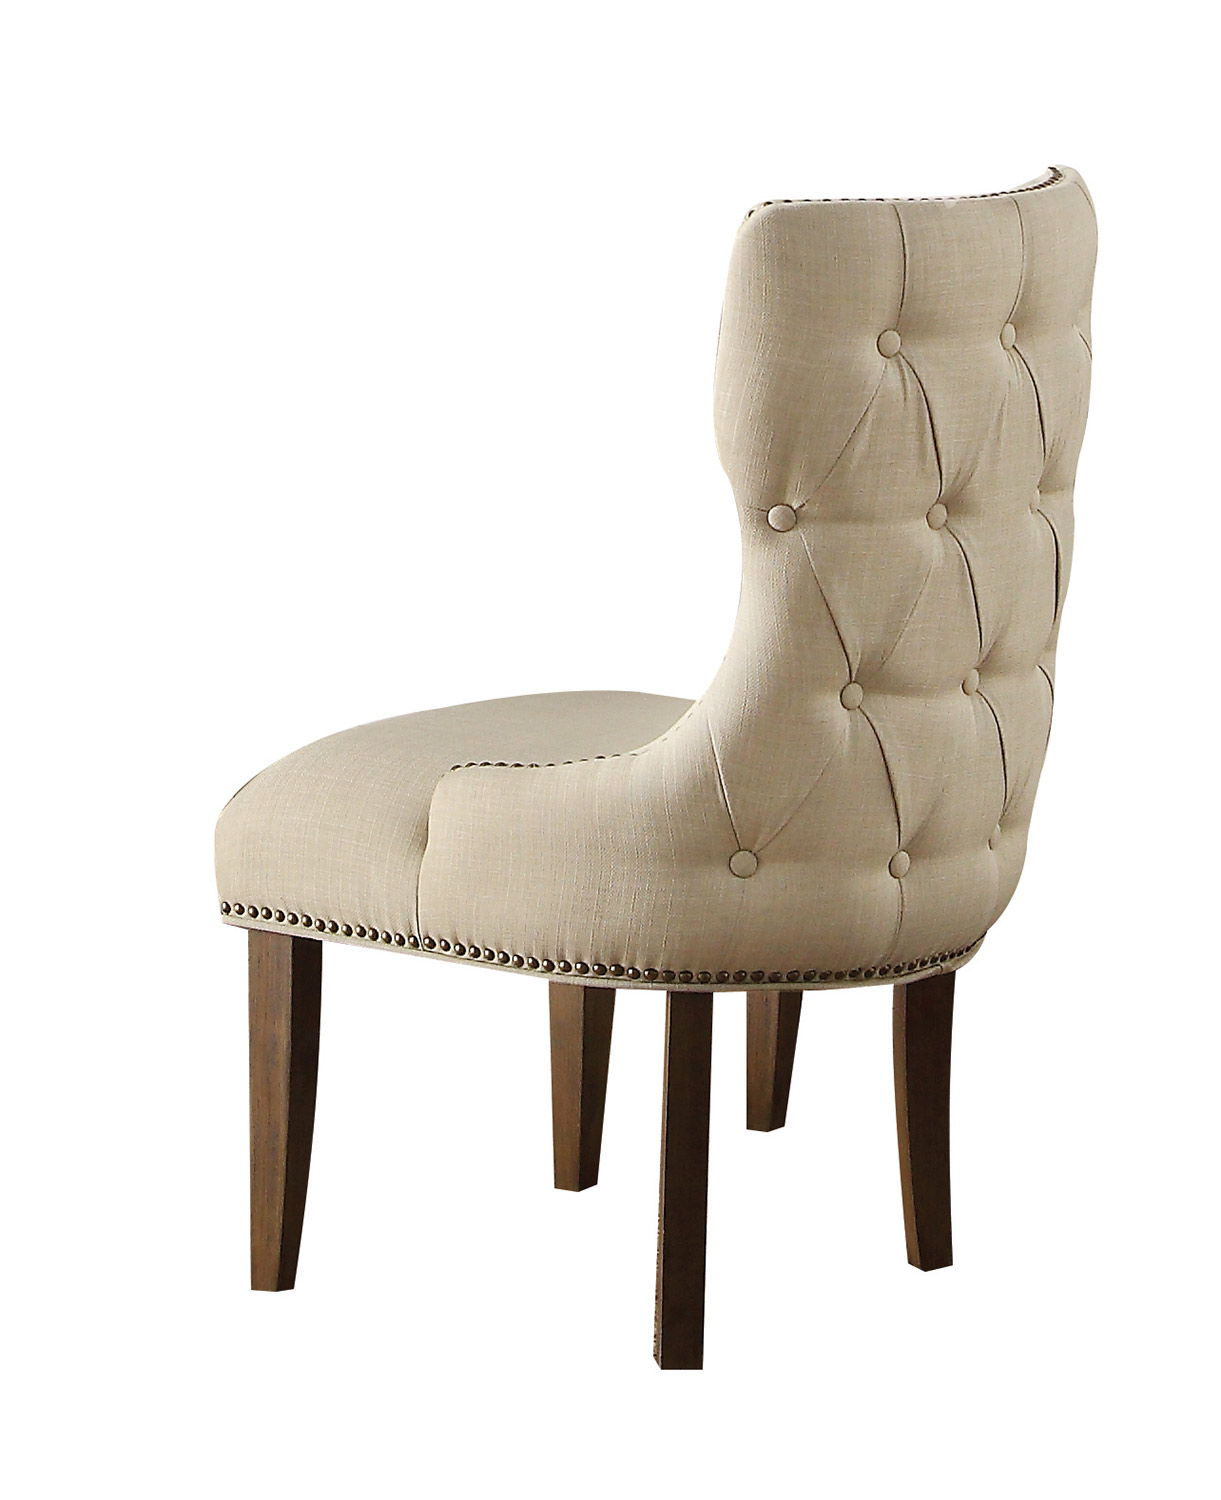 Acme Inverness (Parker) Chair - Fabric/Salvage Oak